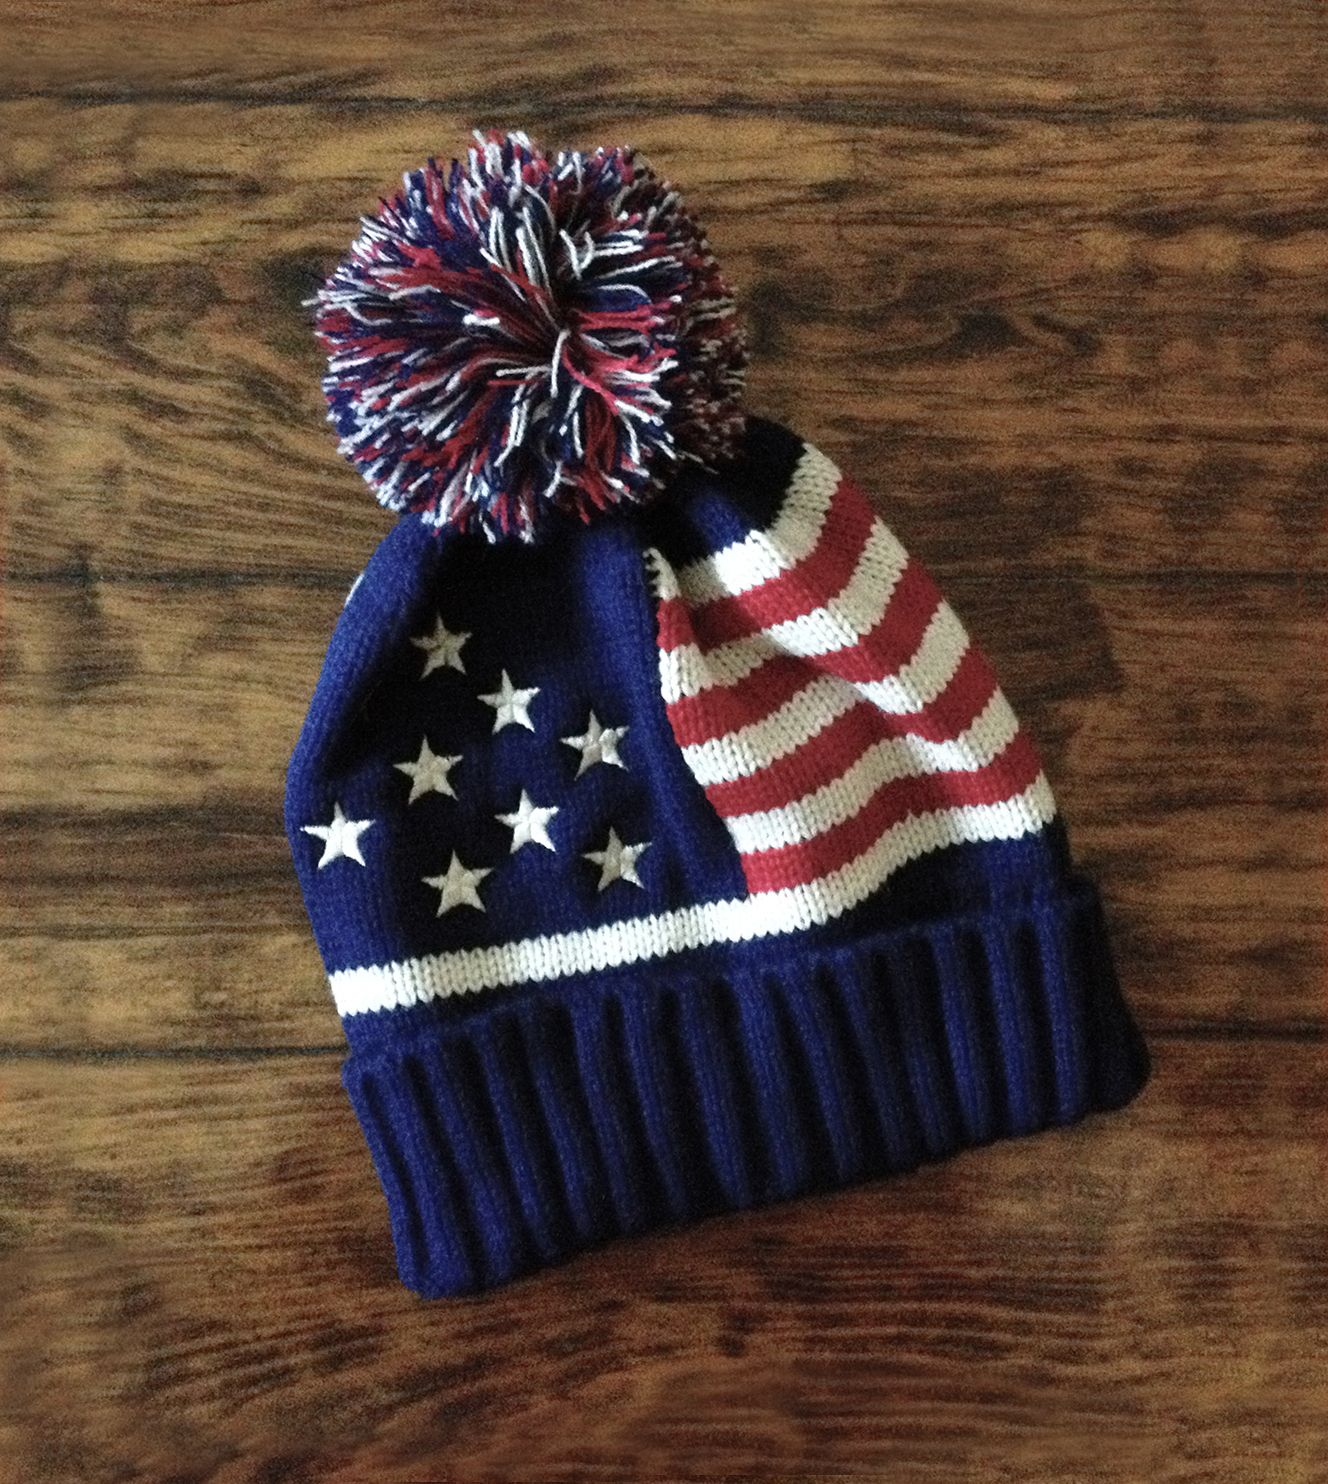 a15169bfeeb Add just the right amount of throwback cool to your winter outfit with this  retro stars and stripes beanie. American flag